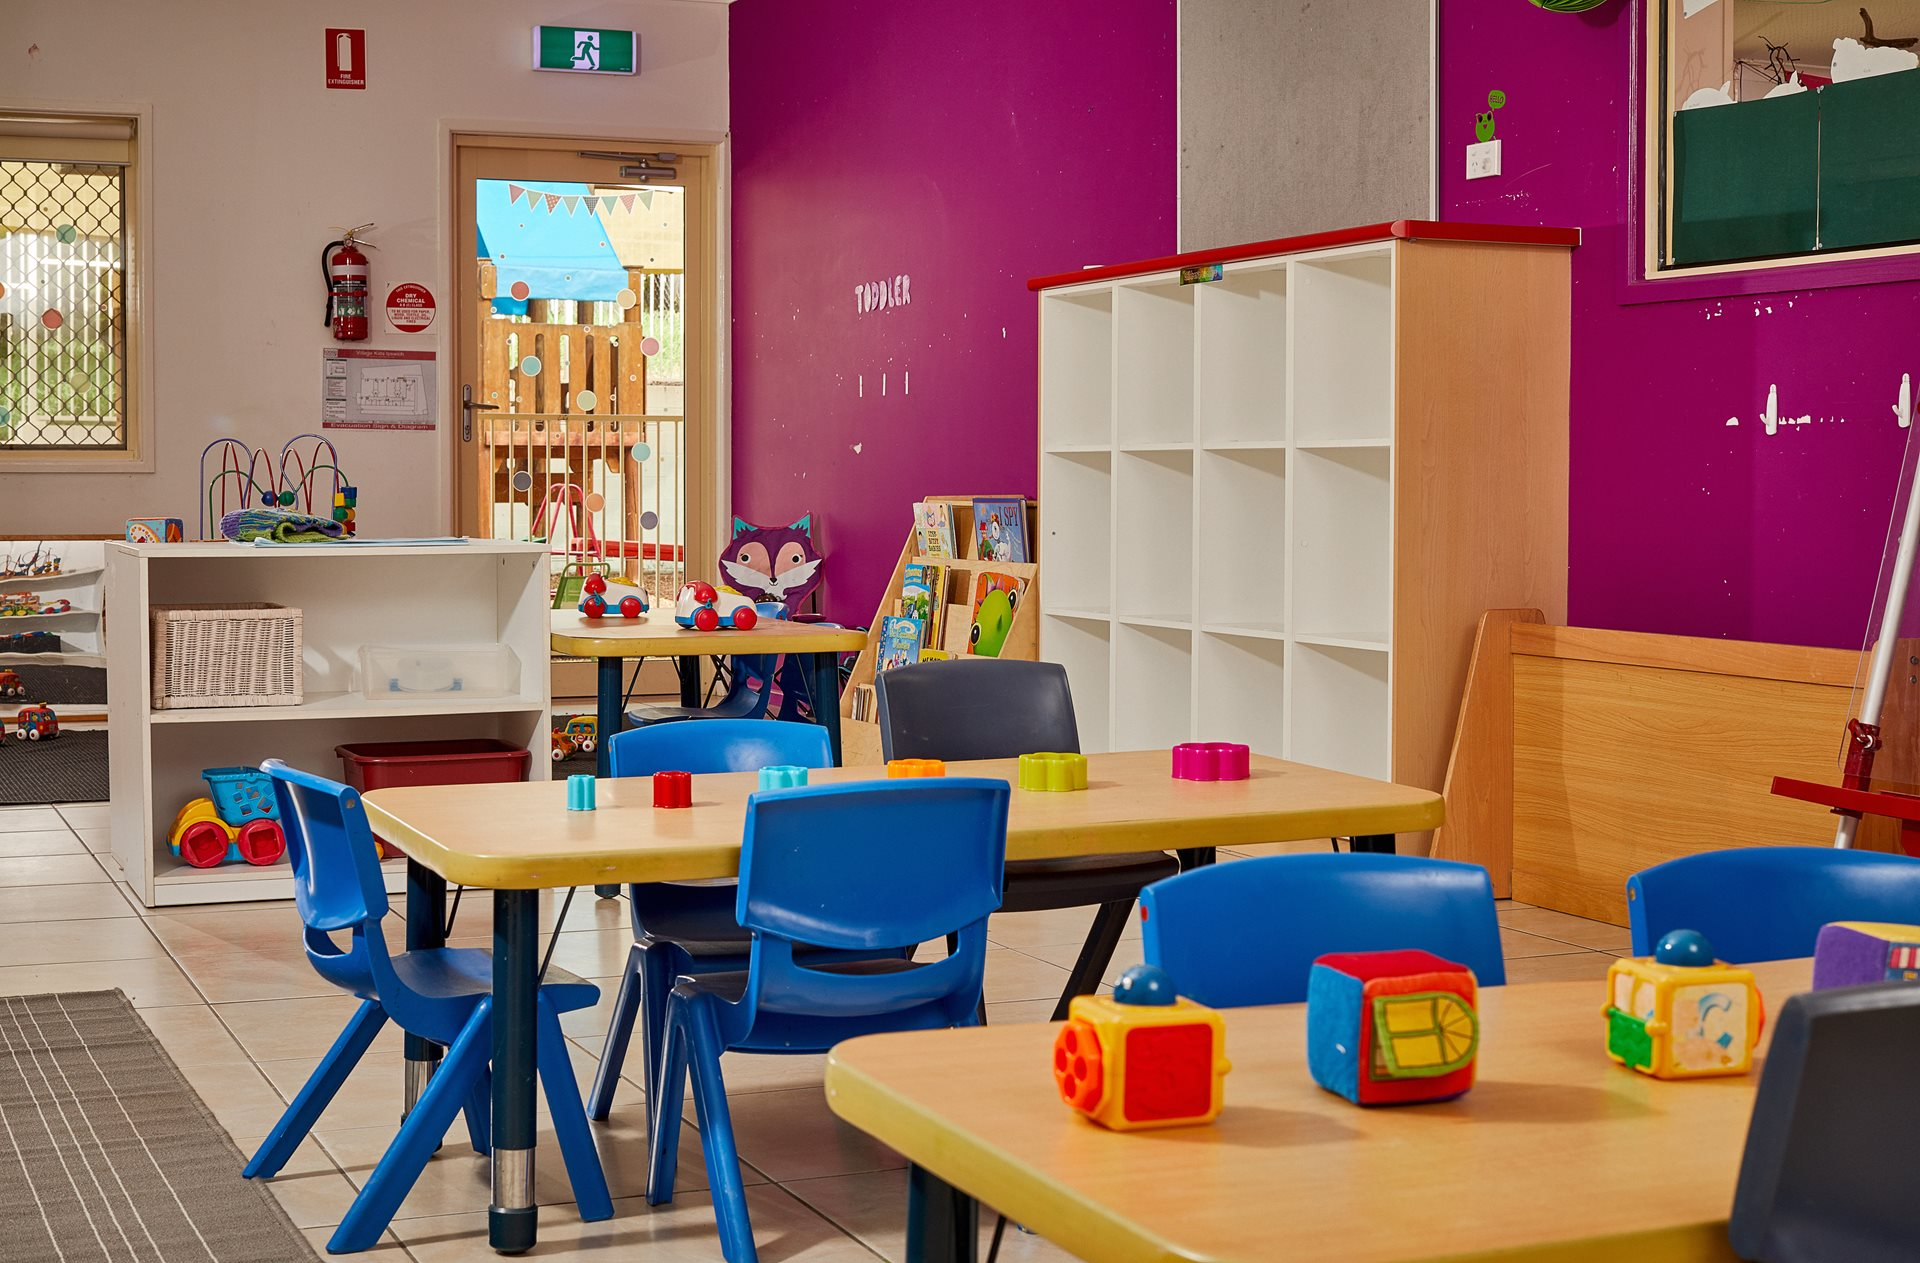 Toddler classroom with tables and chairs with toys on tables